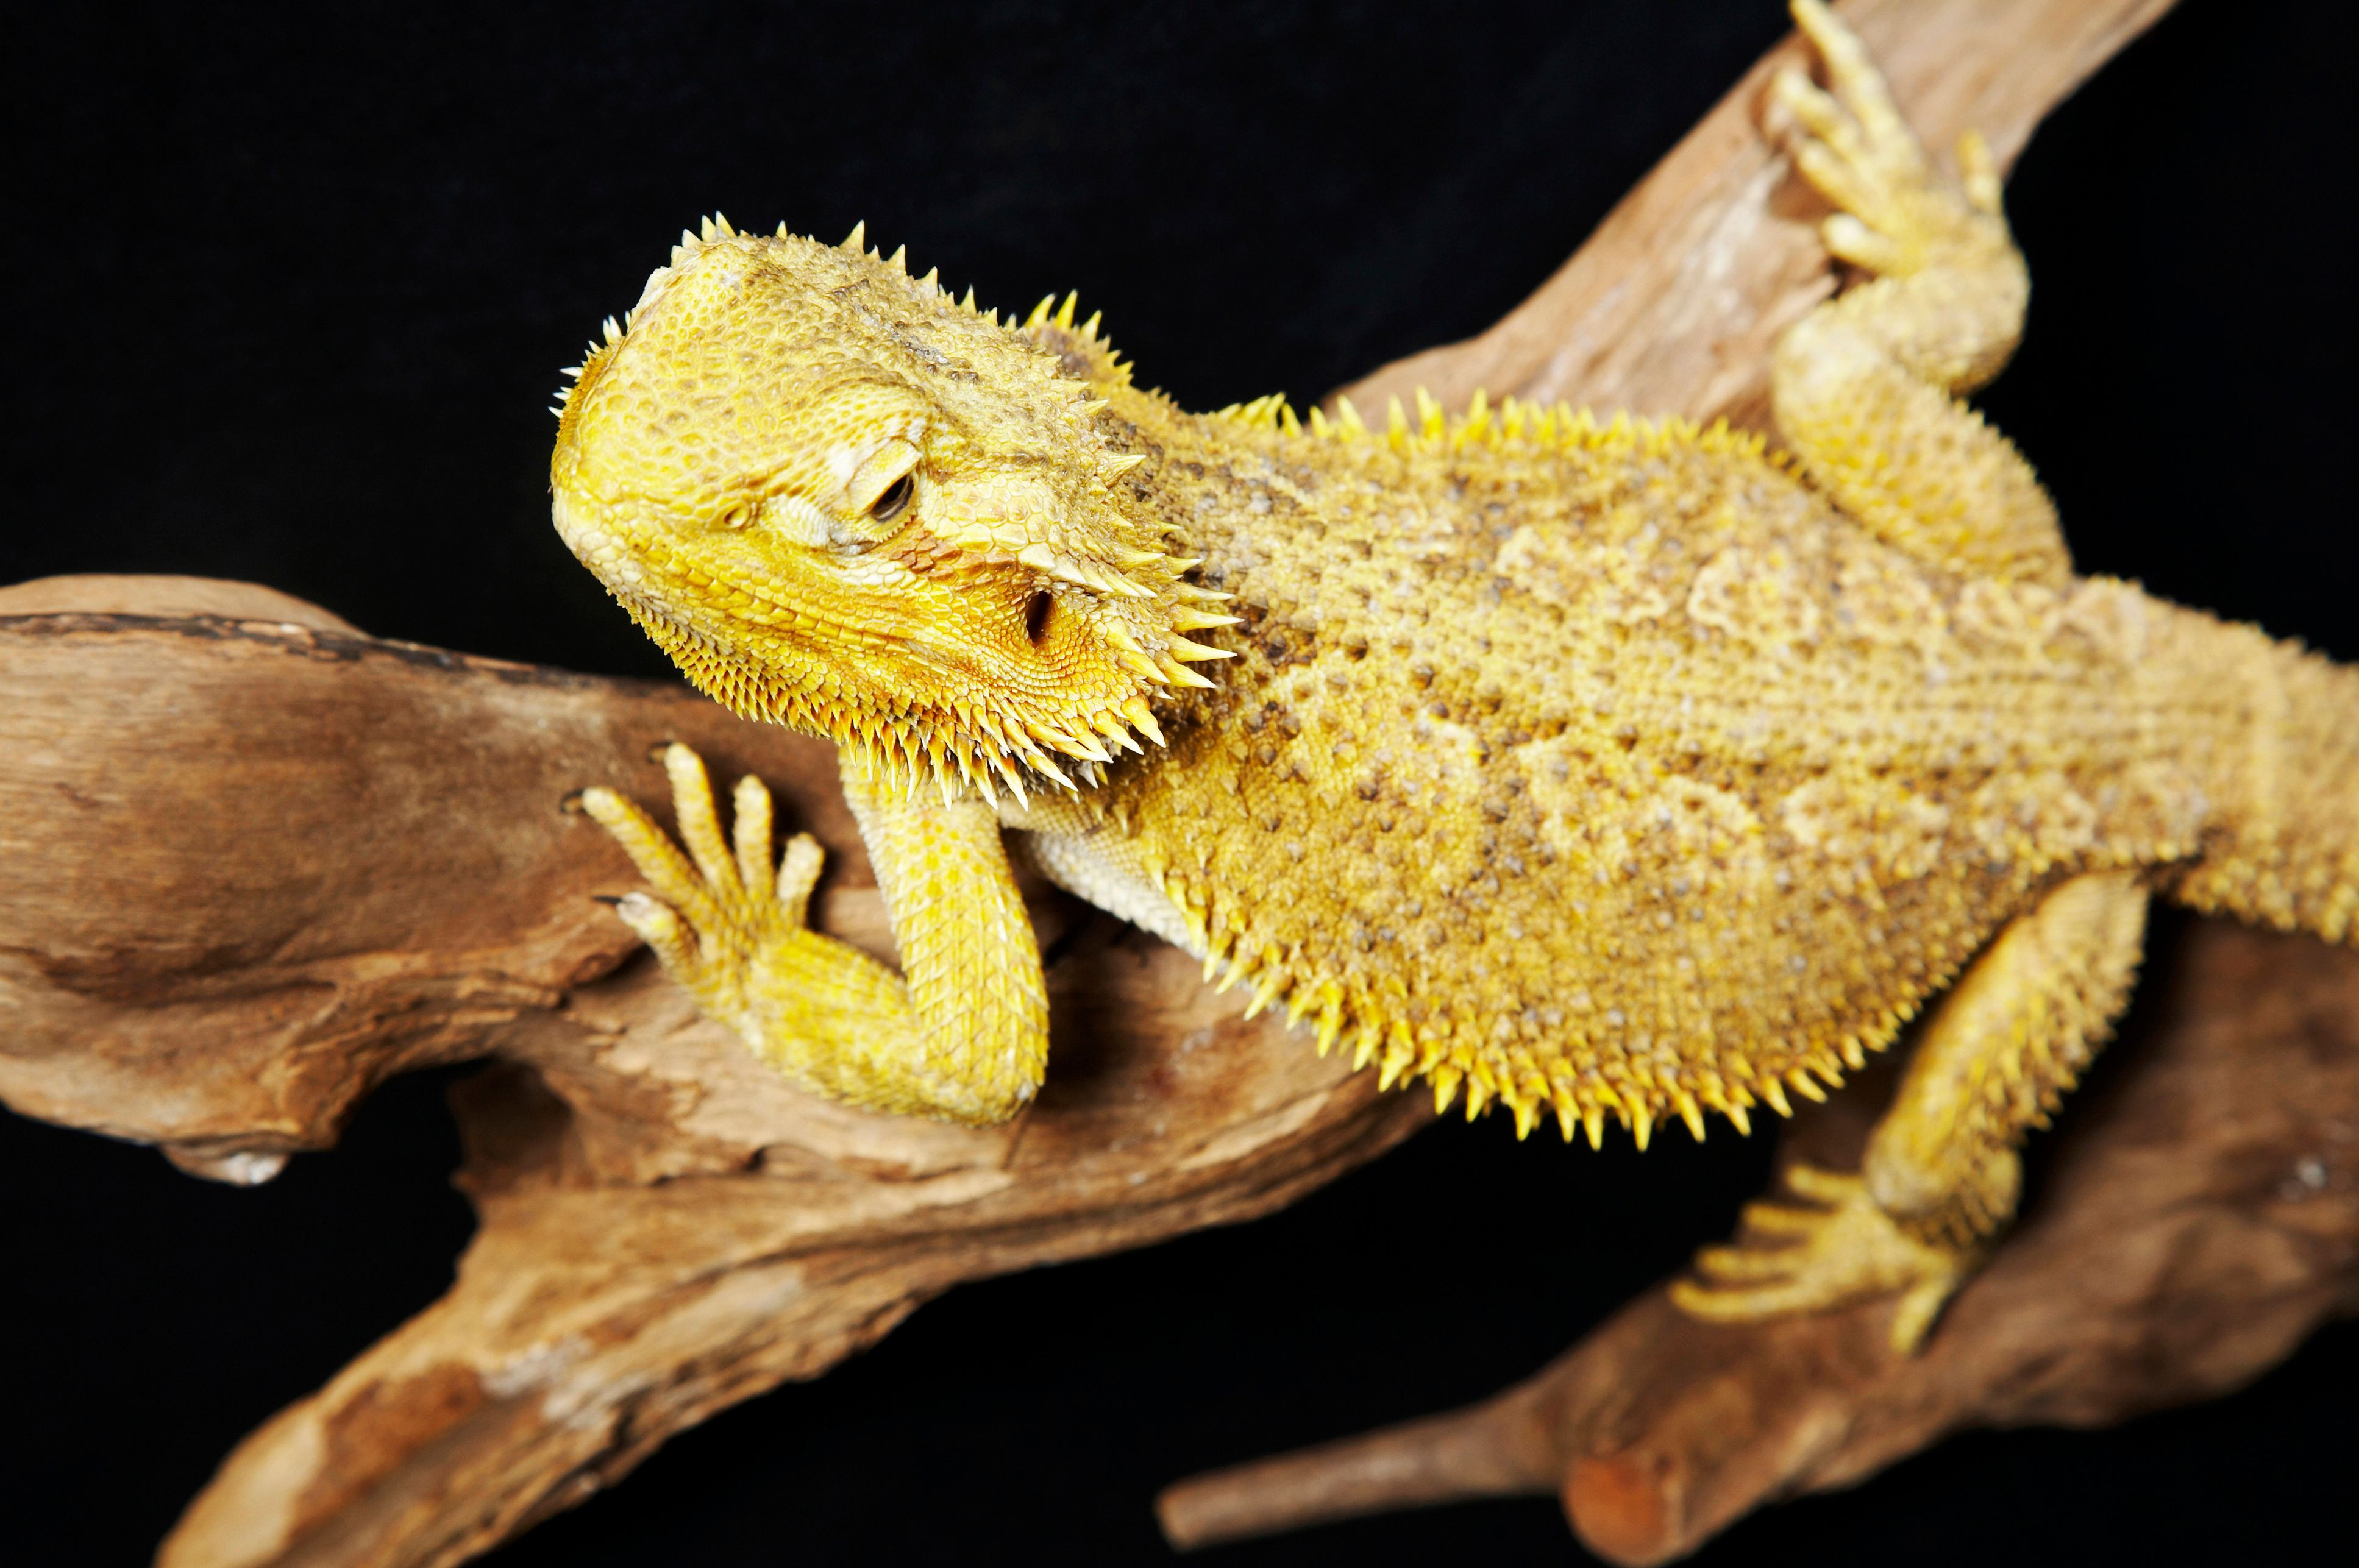 Close-up of a bearded dragon on a branch against a black backdrop